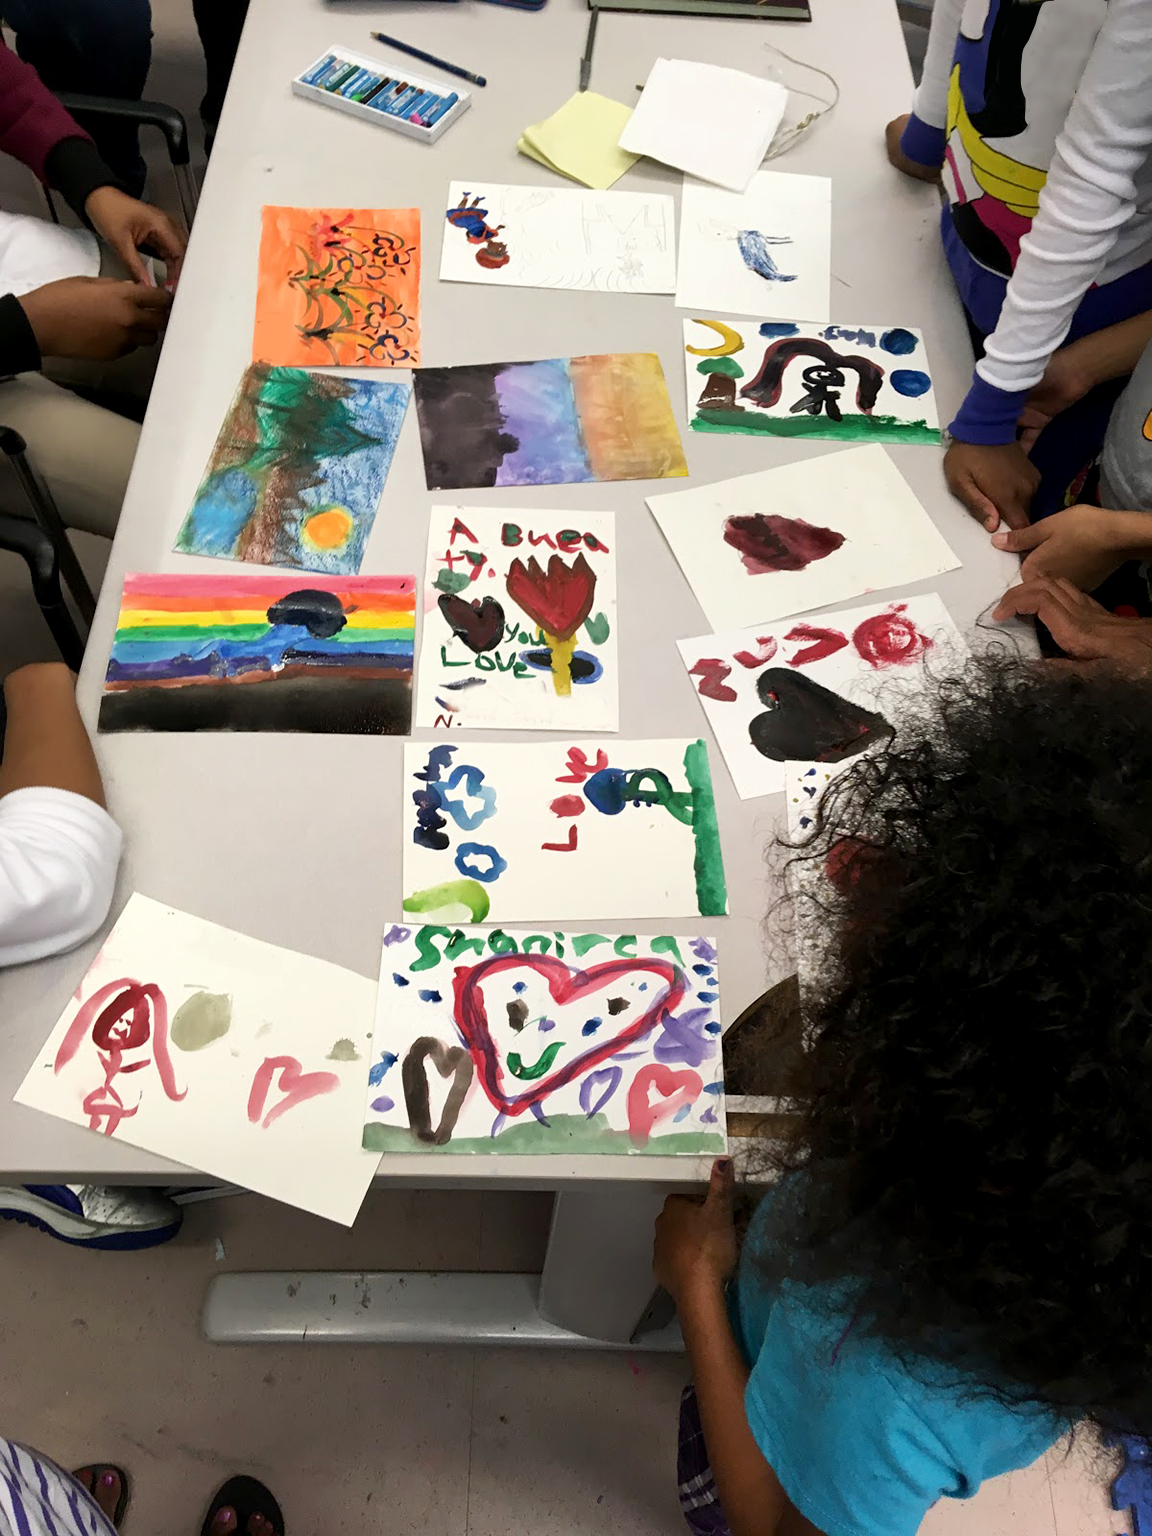 Young children painting with watercolors in the art room at the ACS Children's Center